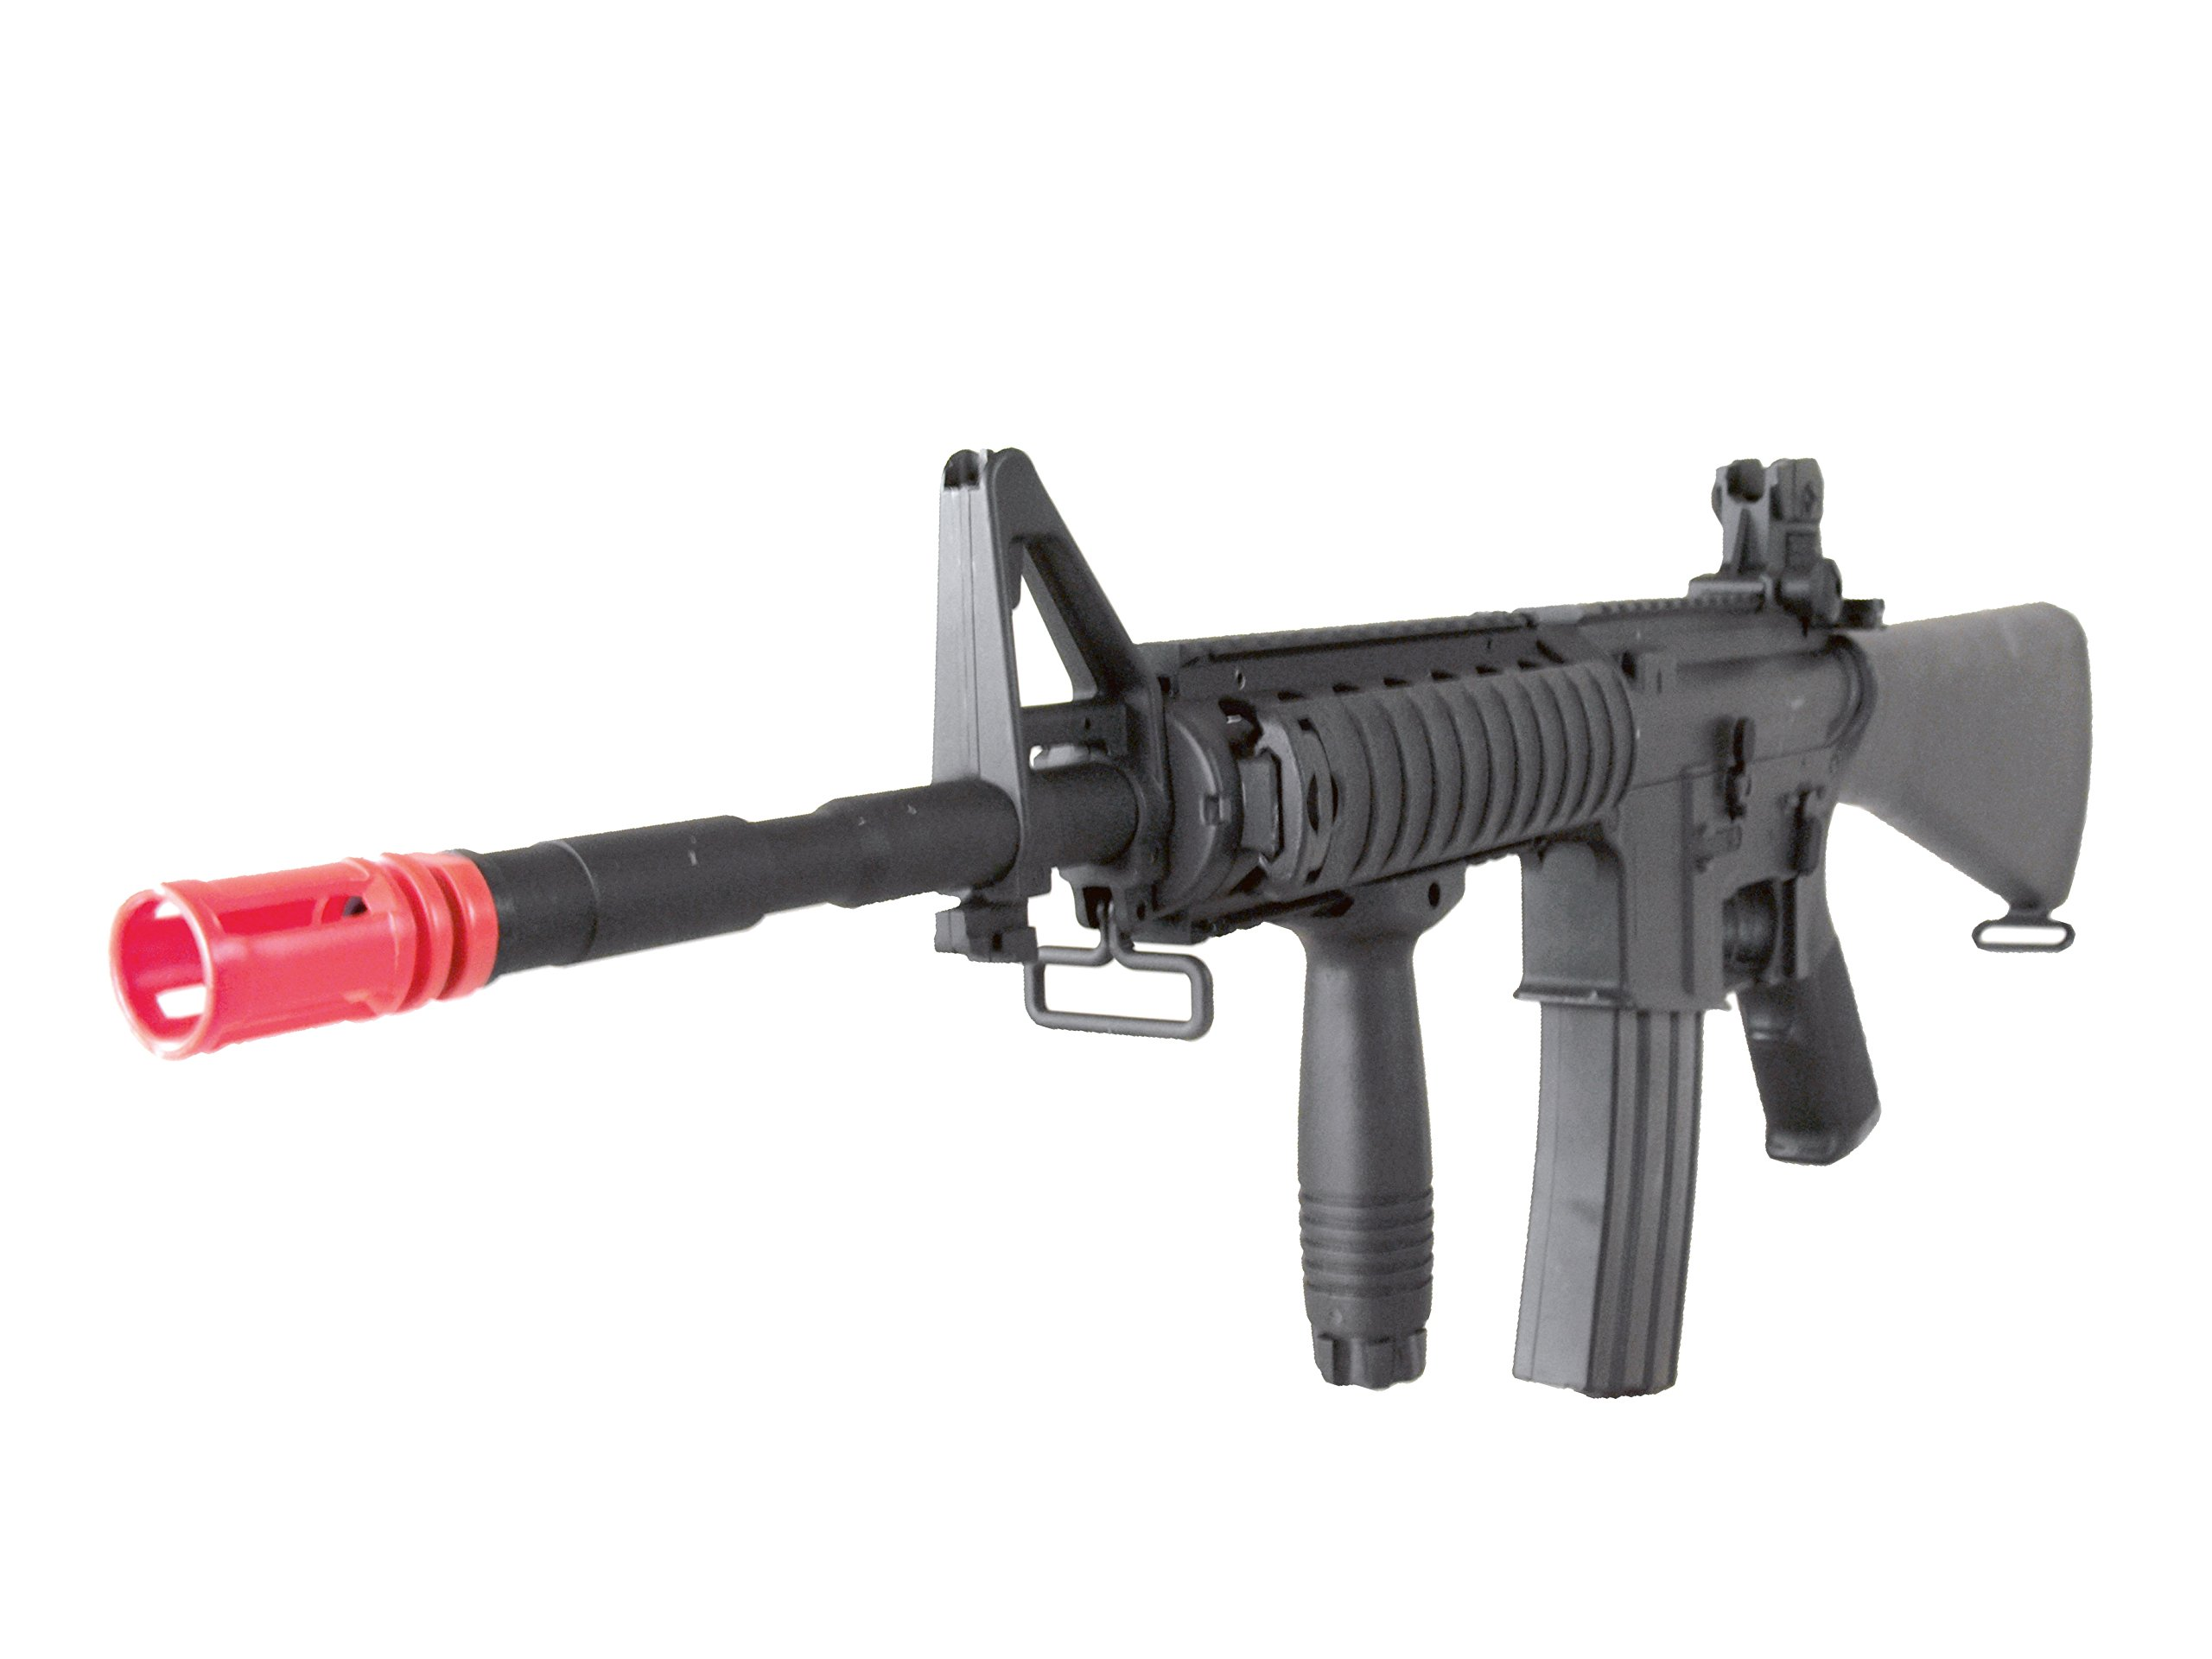 MetalTac Electric Airsoft Gun M4 SR16 Sniper A&K with Full Metal Body, Metal Gearbox Version 2, Full Auto AEG, Upgraded Powerful Spring 380 Fps with .20g BBs